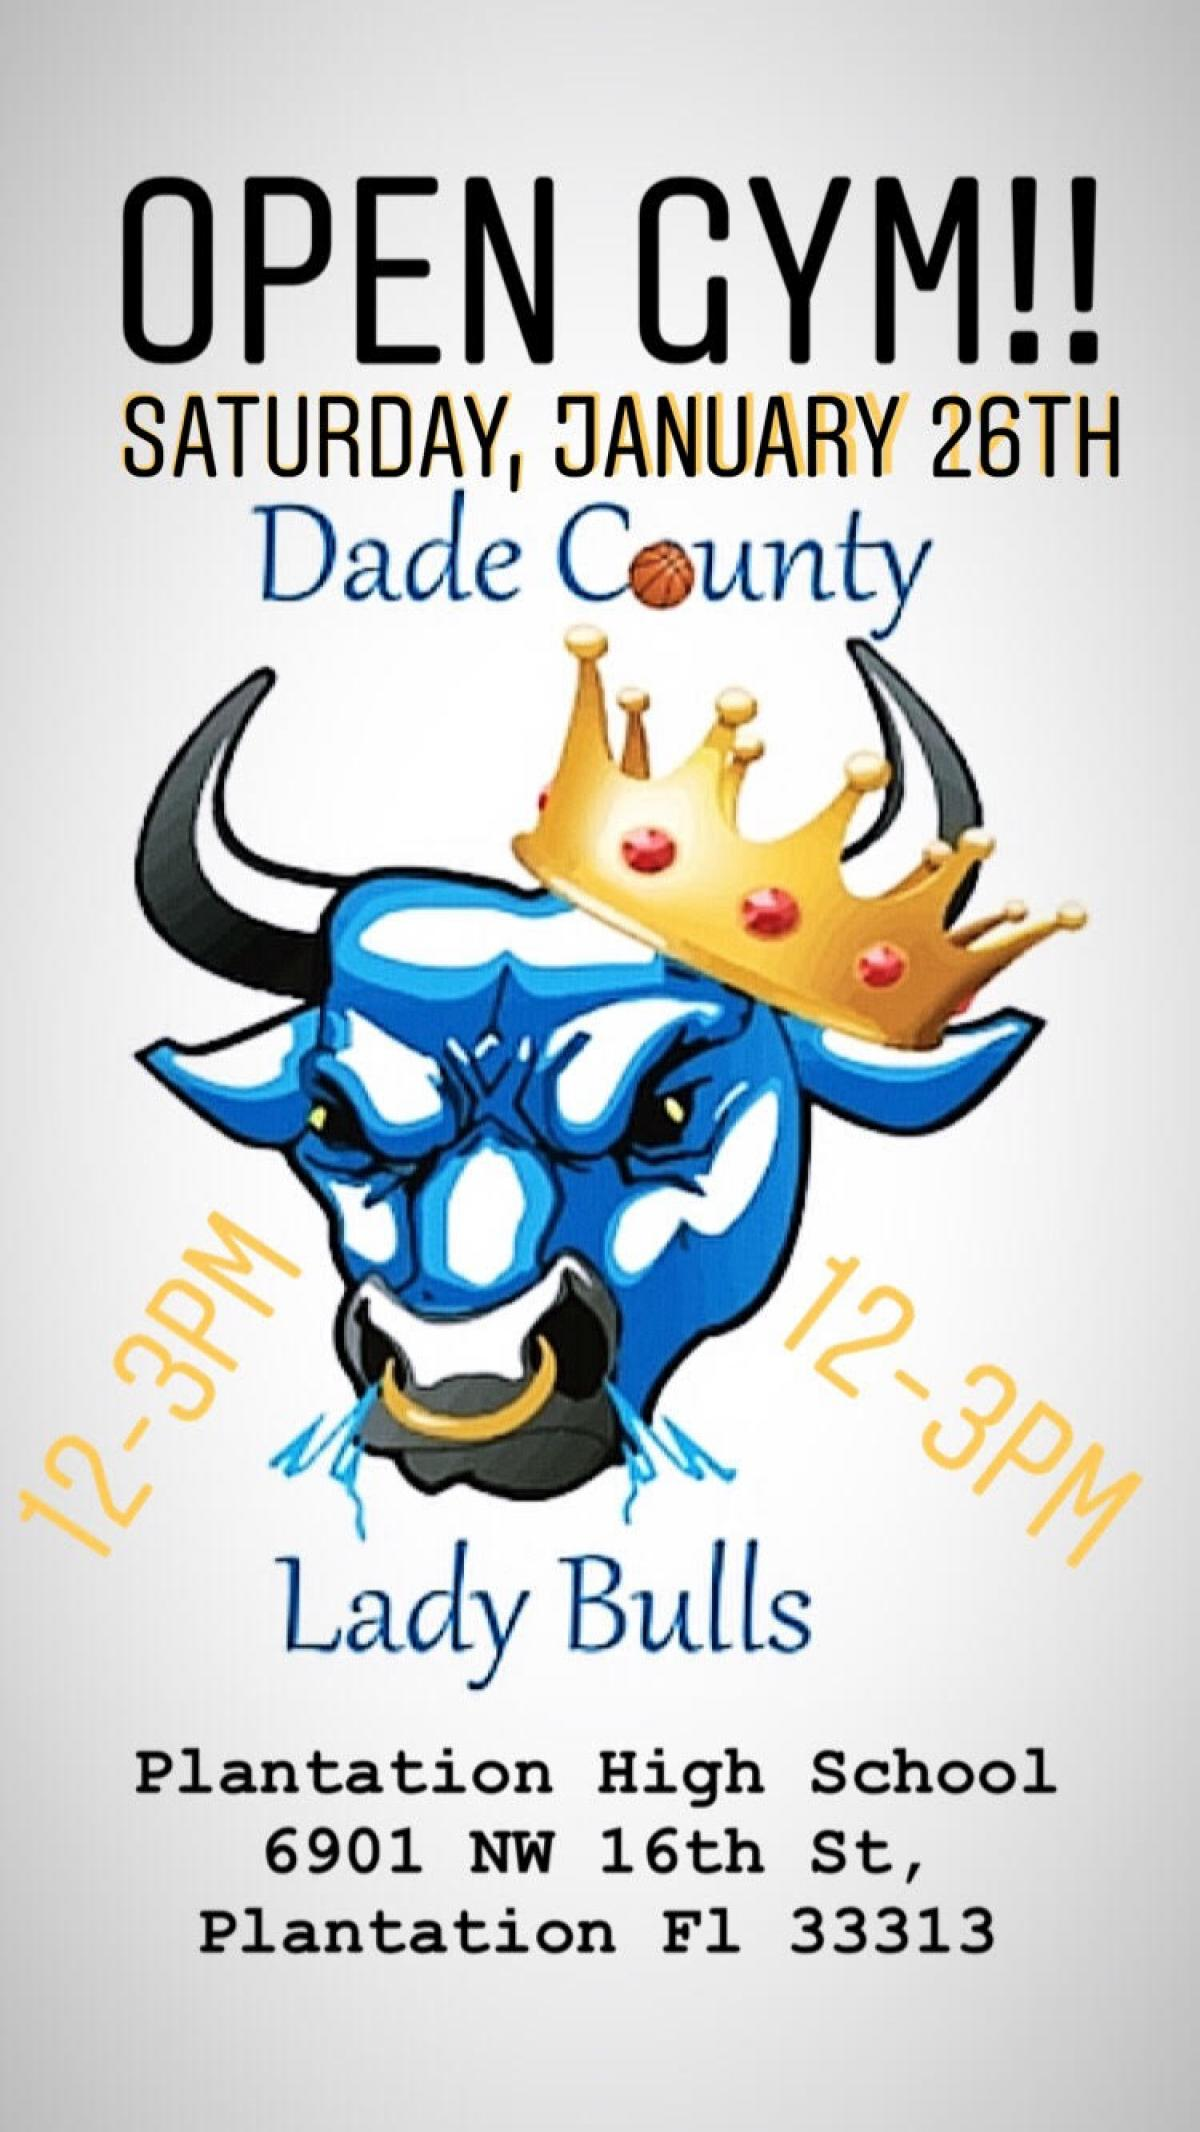 FREE OPEN GYM with the LADY BULLS 1/26/2019